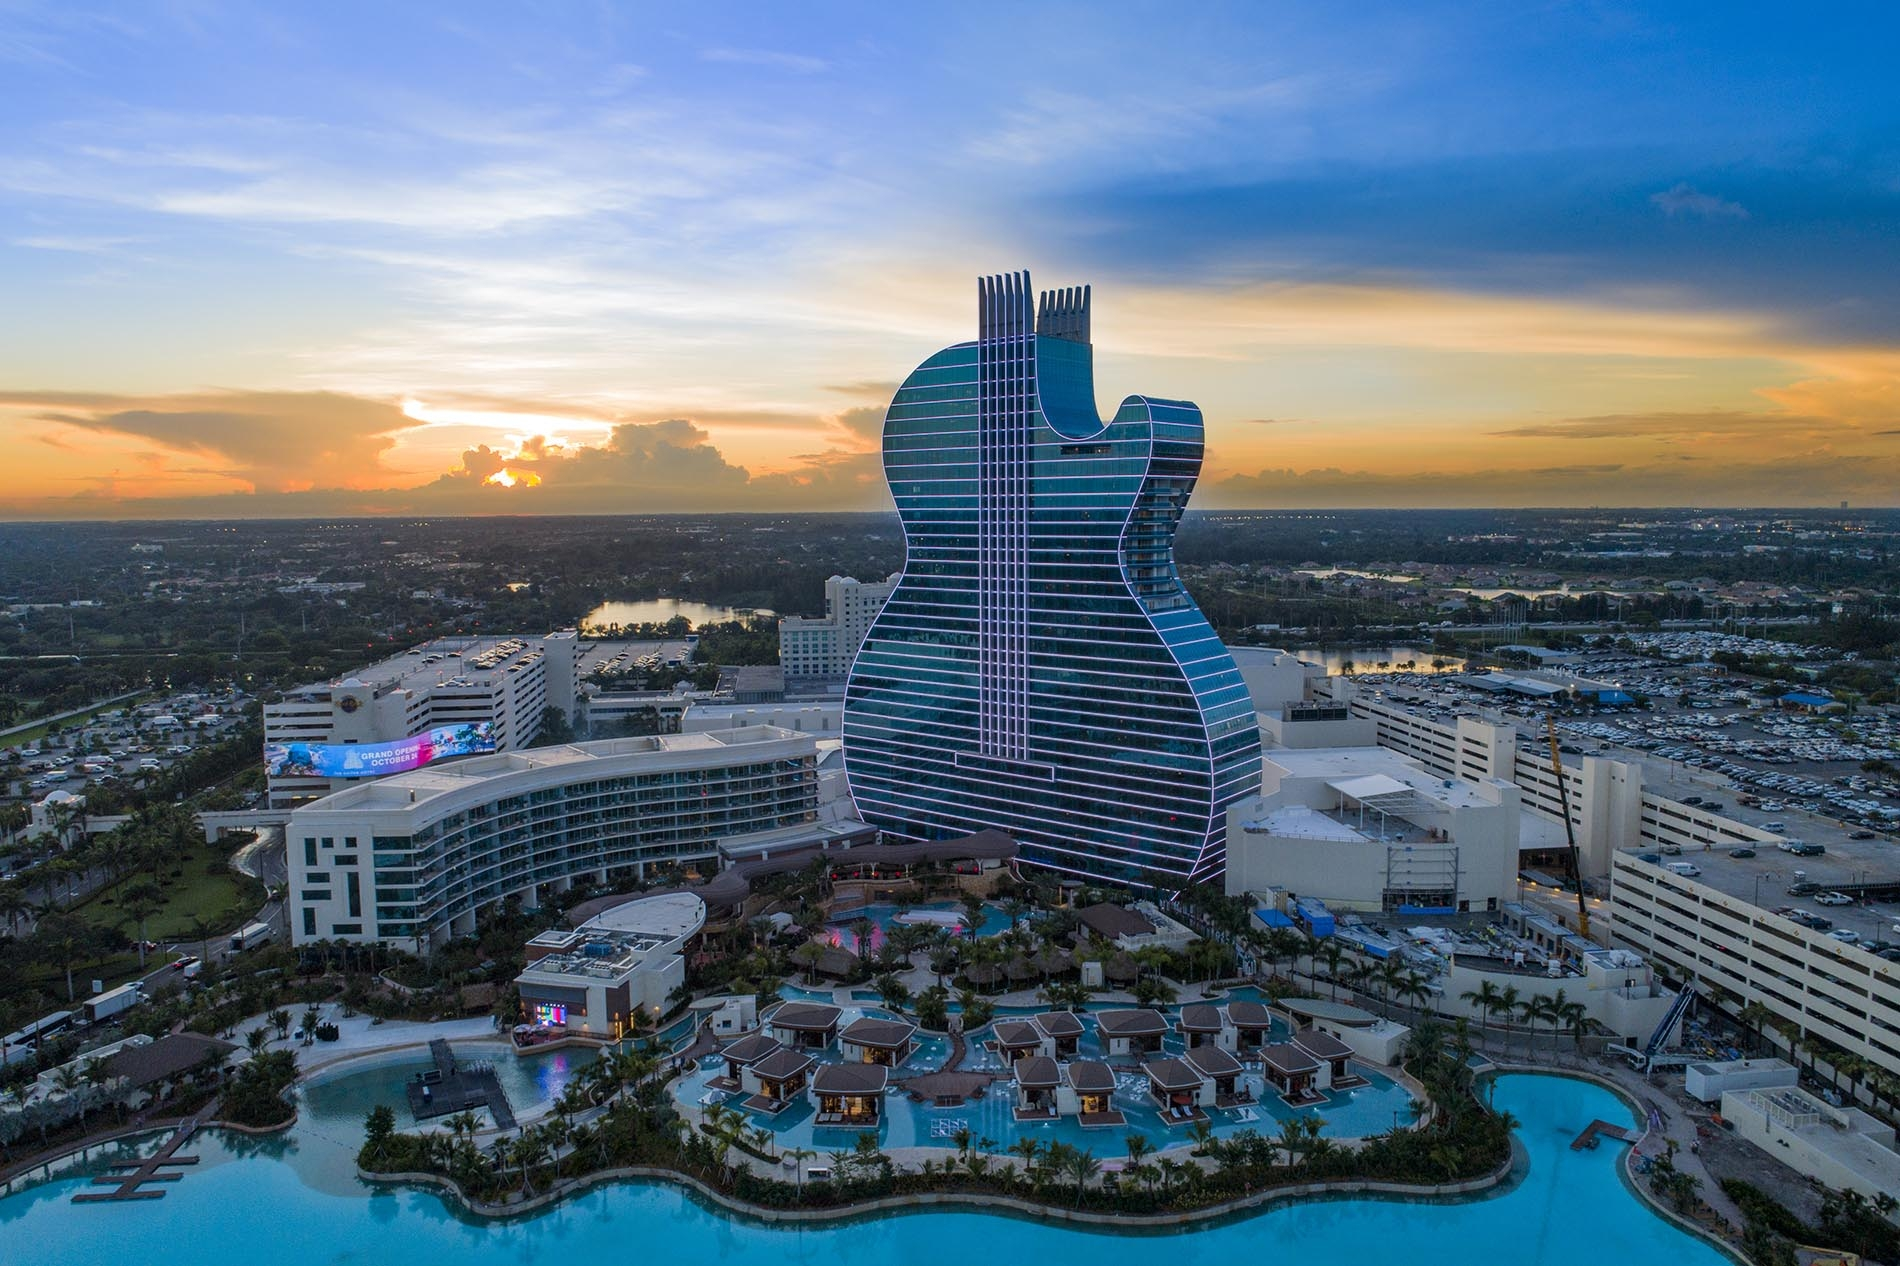 Drone Photography of the Hard Rock Hotel and Casino in Hollywood Florida at Sunset